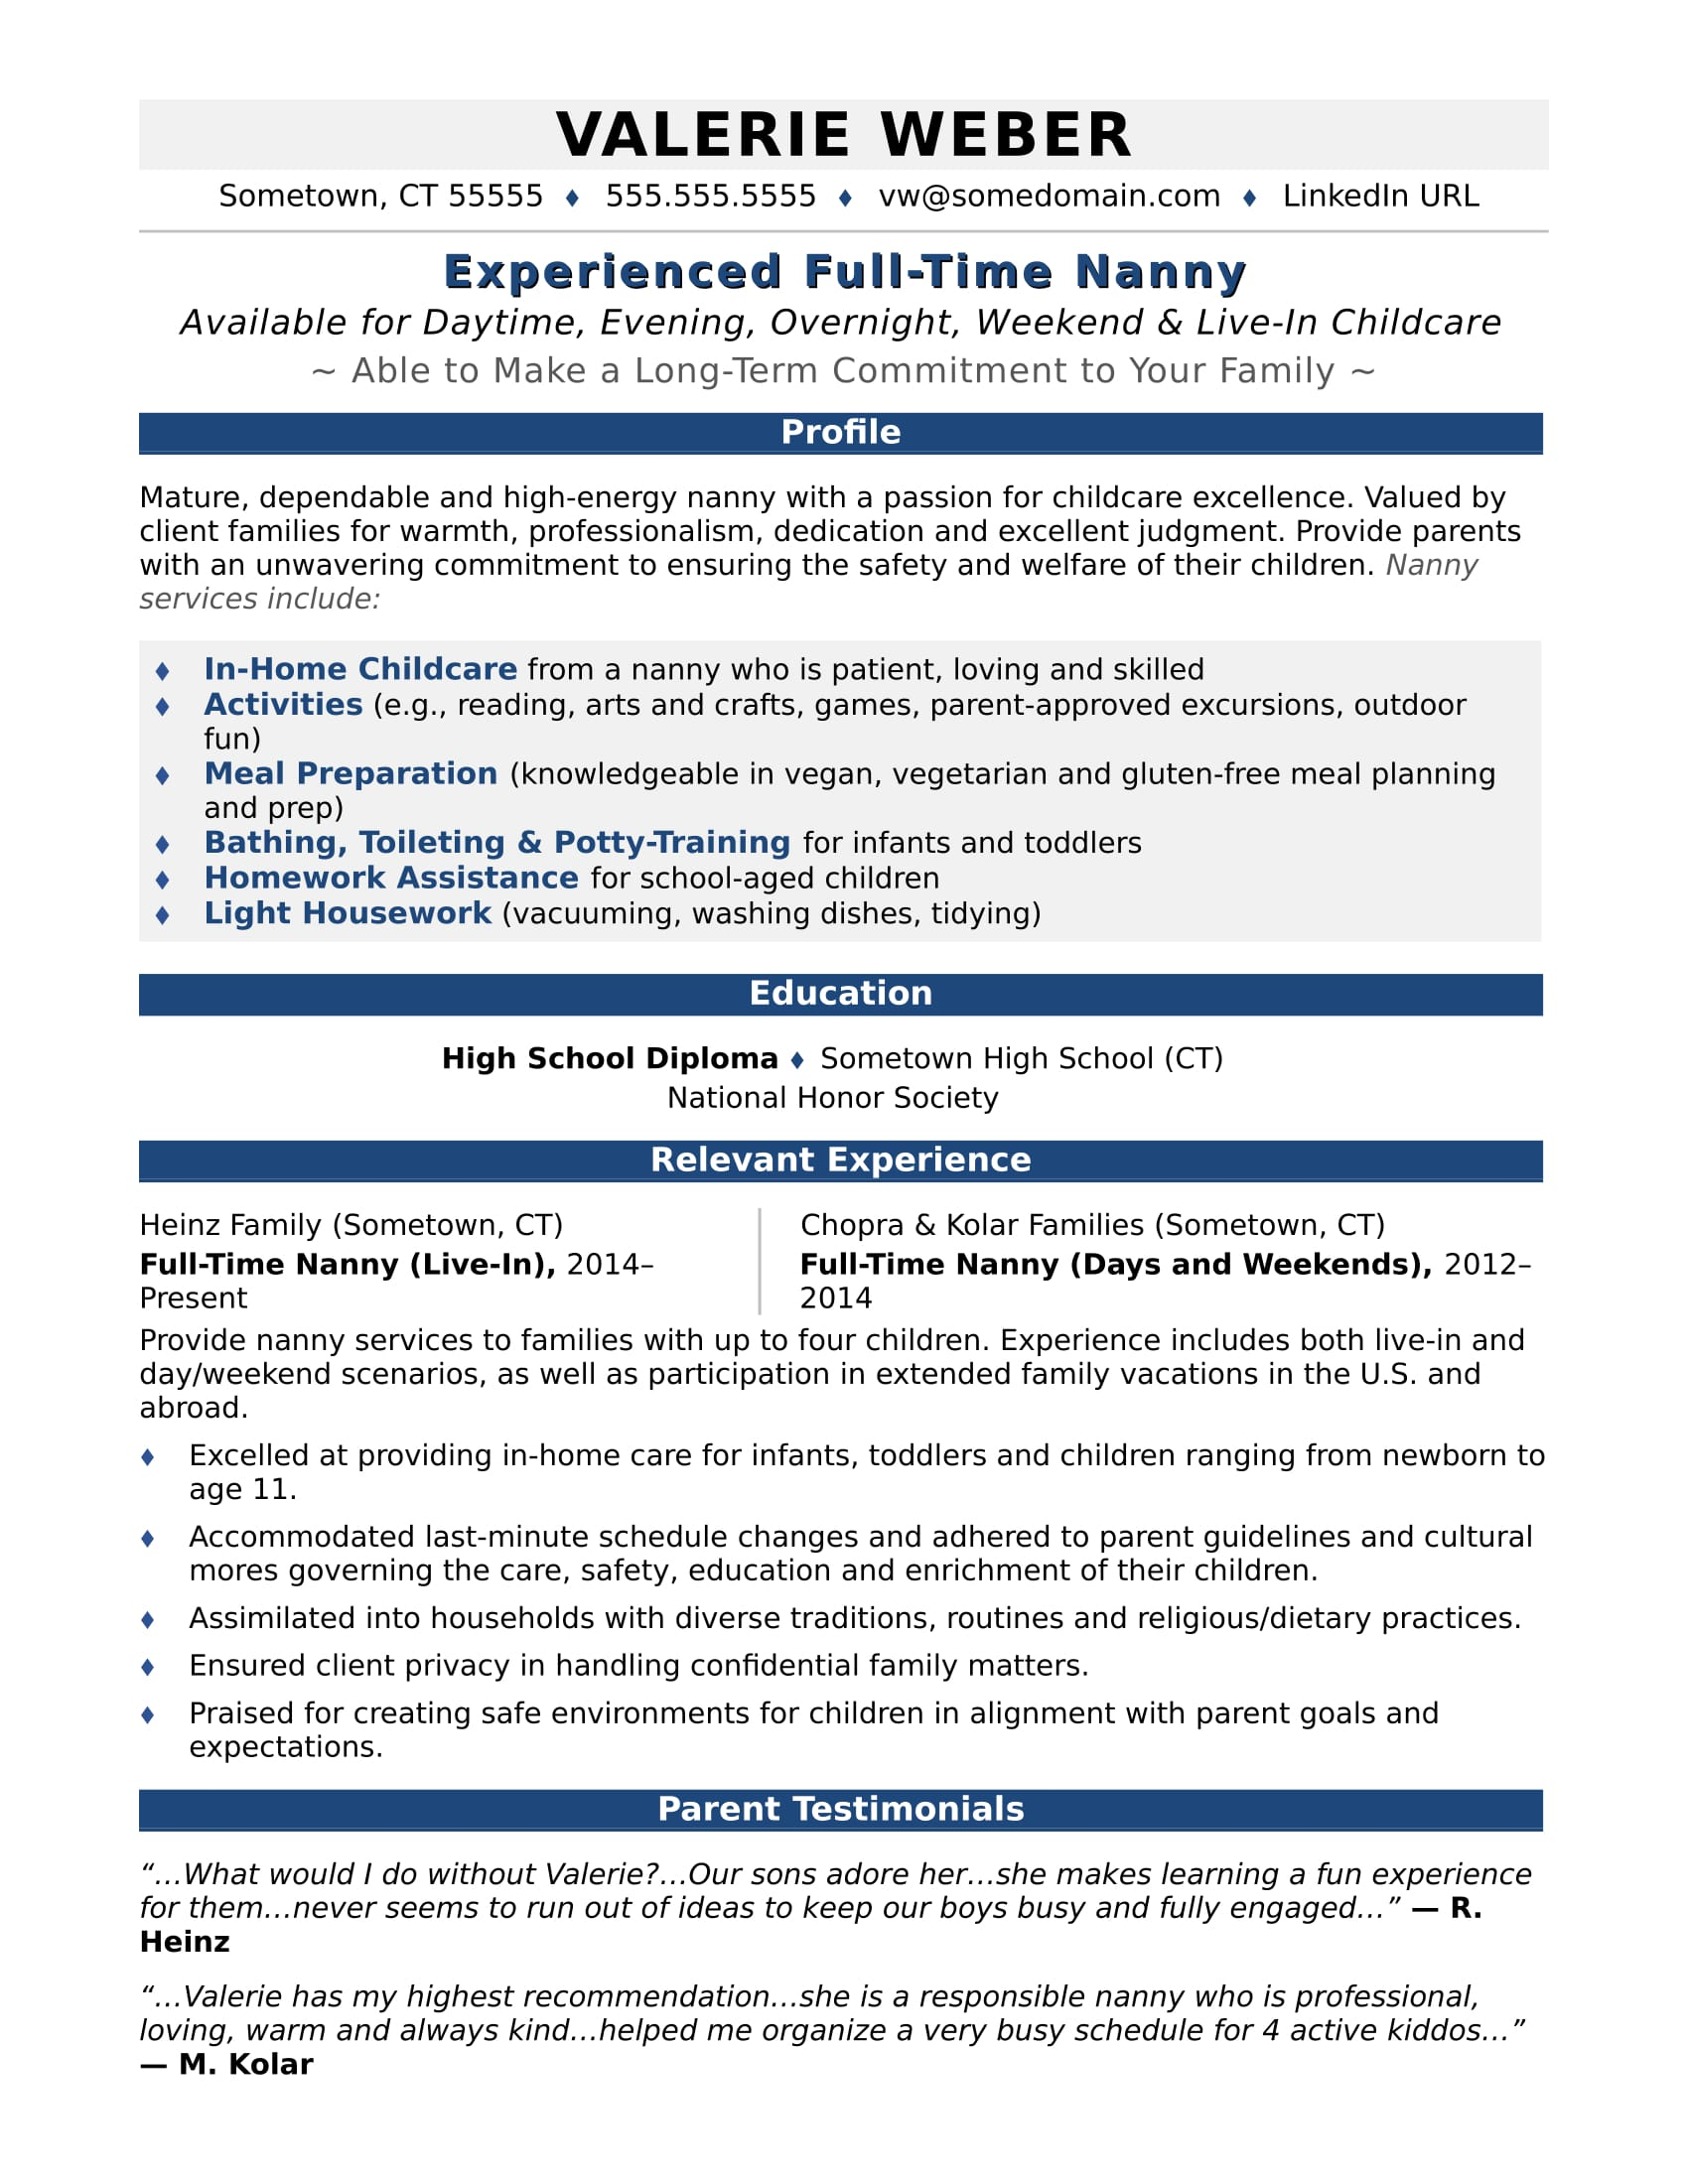 nanny resume sample monster duties of babysitter for rate writing services creative Resume Duties Of Babysitter For Resume